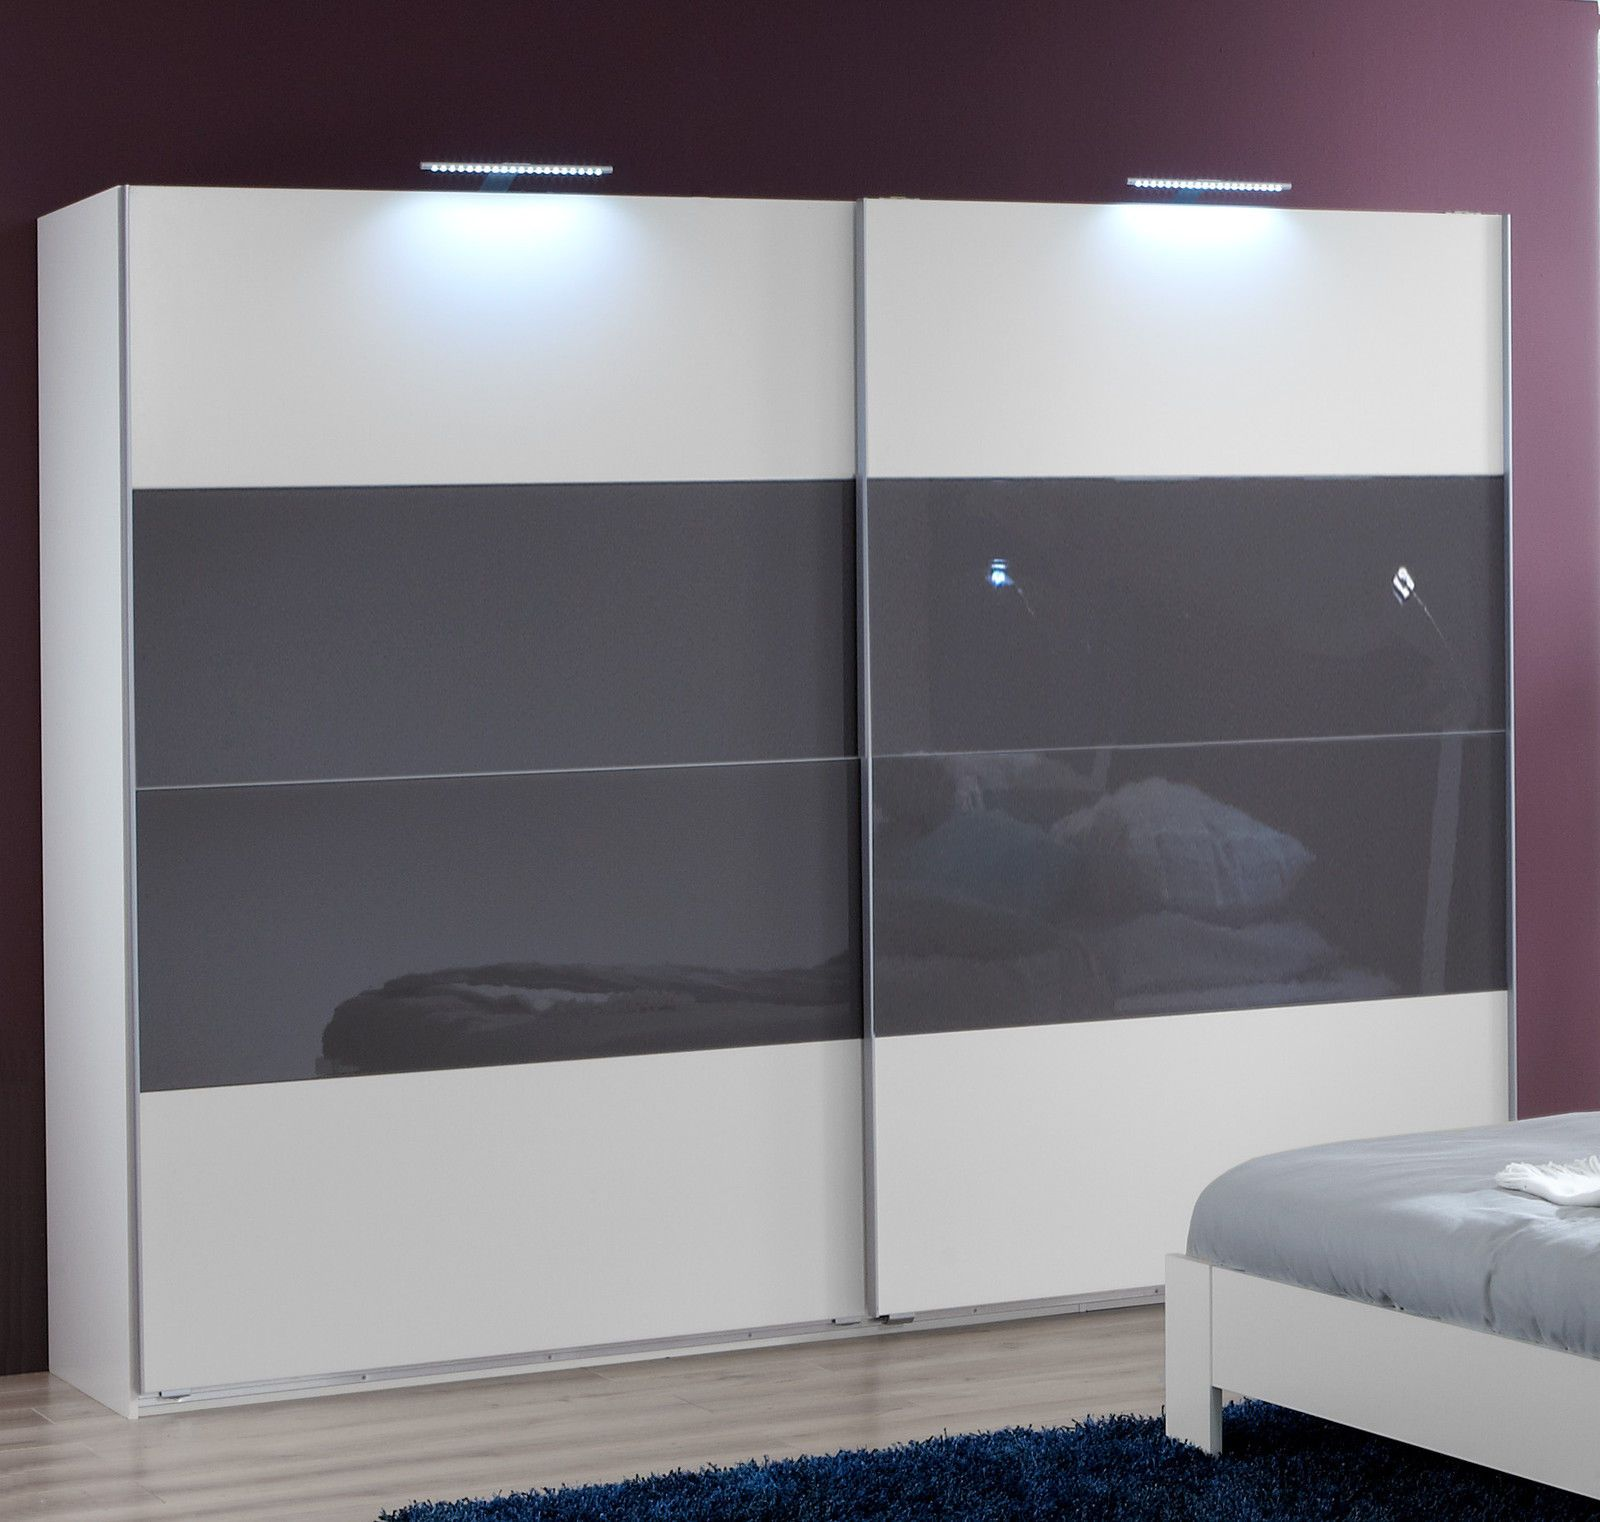 Slumberhaus German Eleganz White Grey Glass 135cm Sliding Door Wardrobe Sliding Door Wardrobe Designs Sliding Wardrobe Designs Sliding Wardrobe Doors